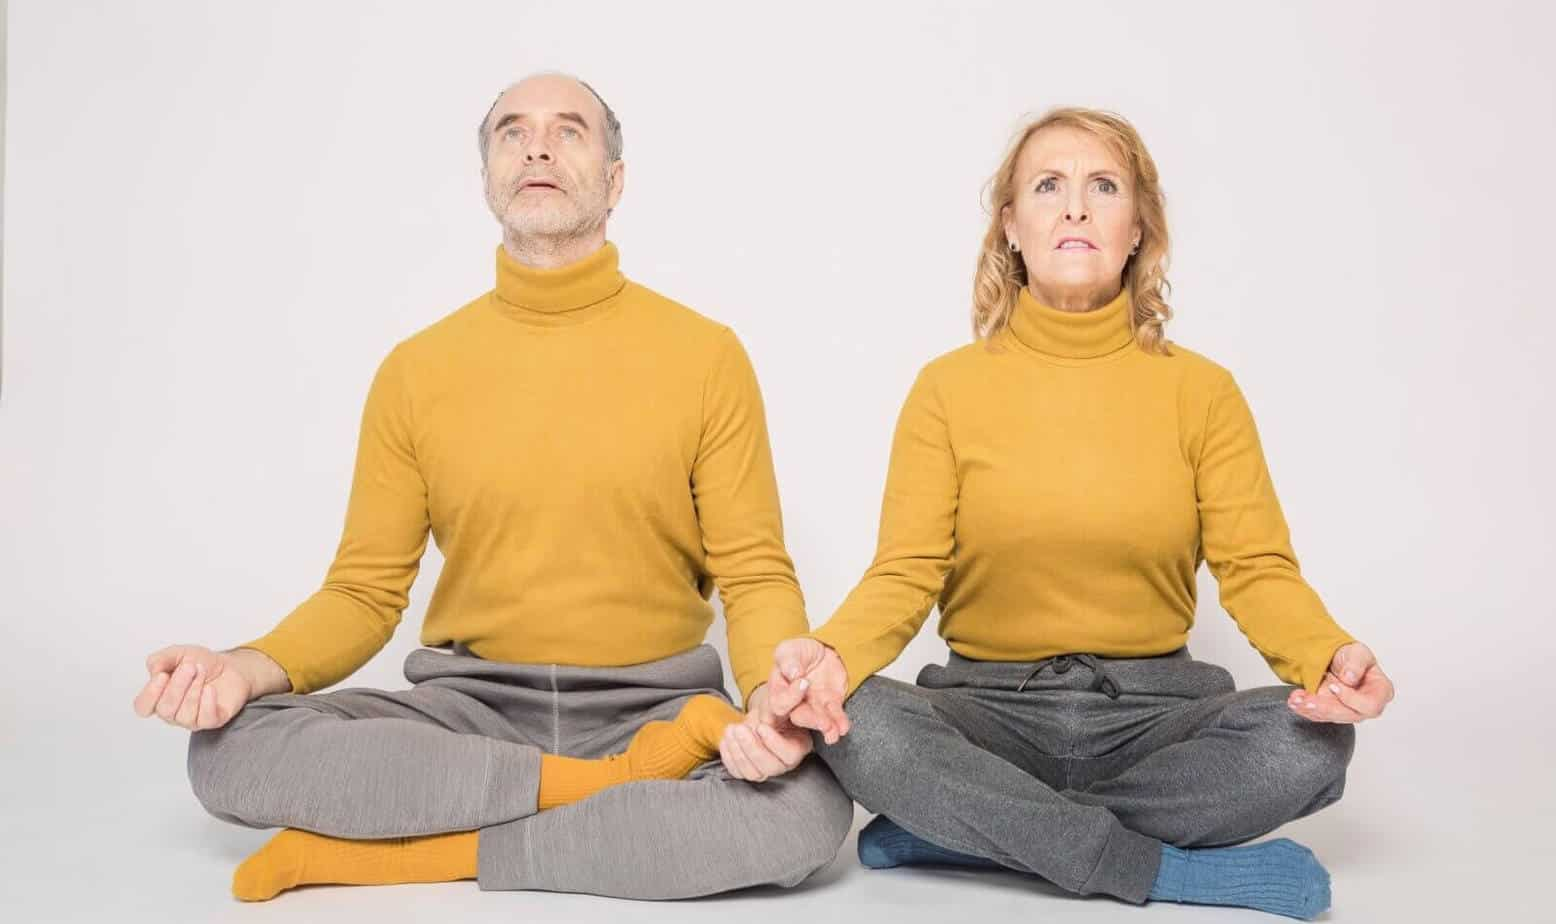 yoga stretching exercises for seniors